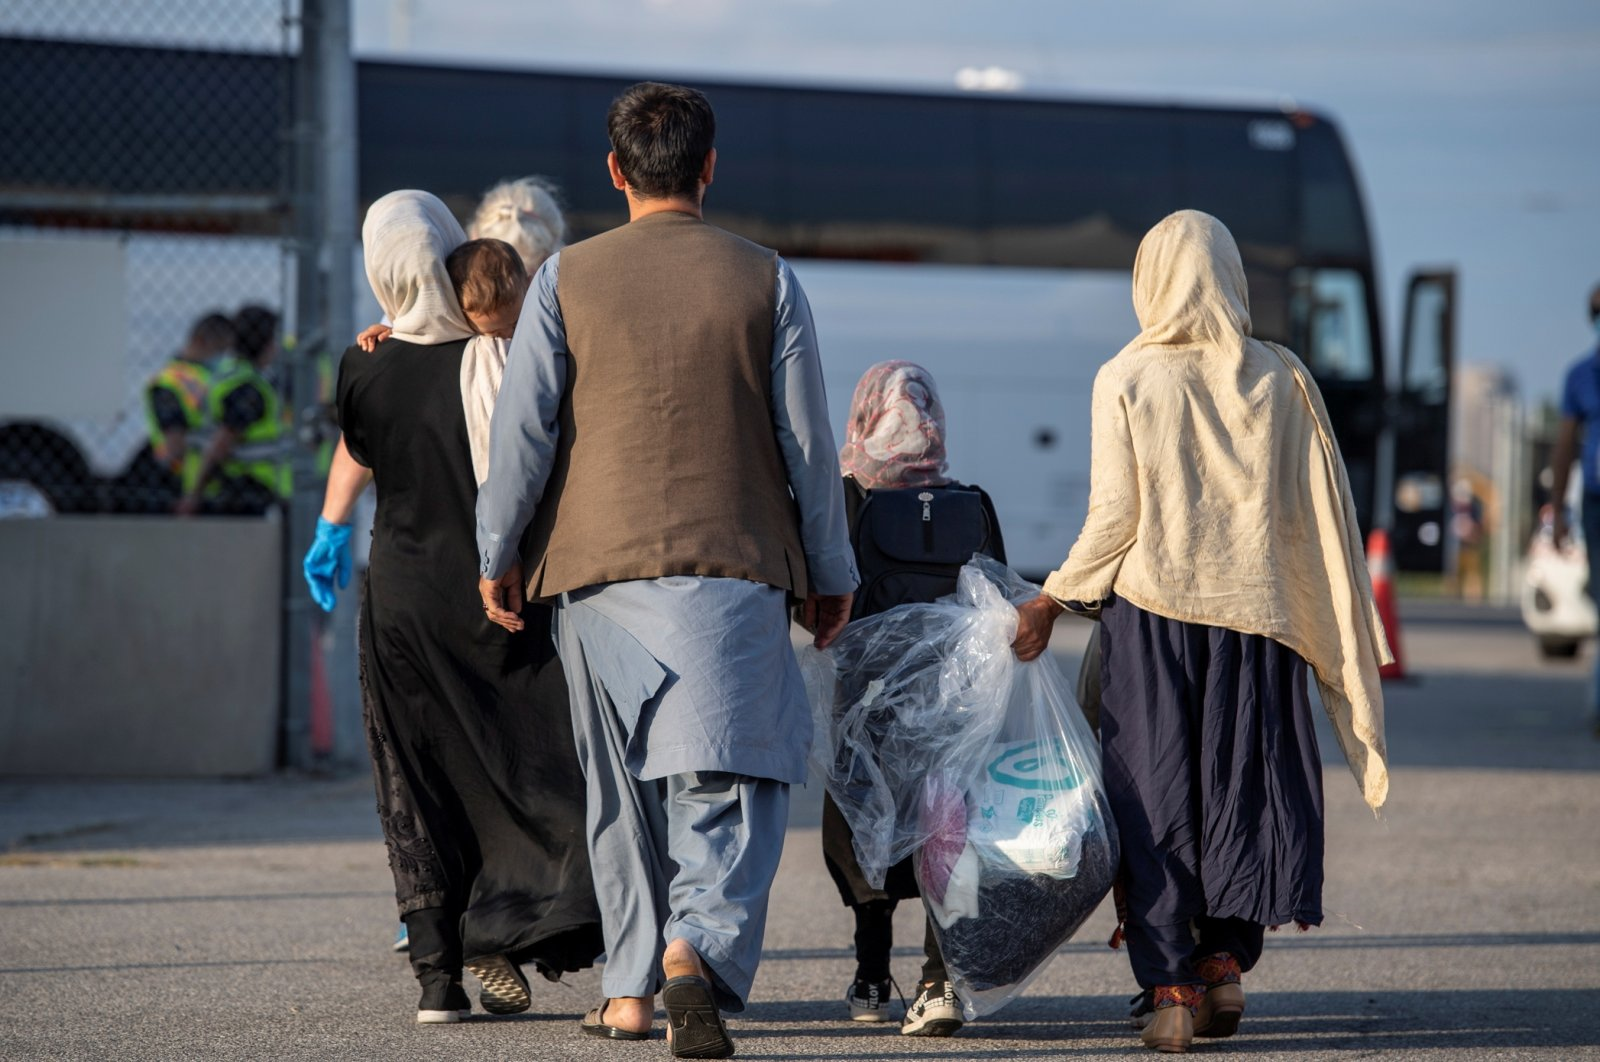 Afghan refugees who supported Canada's mission in Afghanistan arrive at Toronto Pearson International Airport, Toronto, Canada, on Aug. 24, 2021. (Canadian Armed Forces Handout via Reuters)